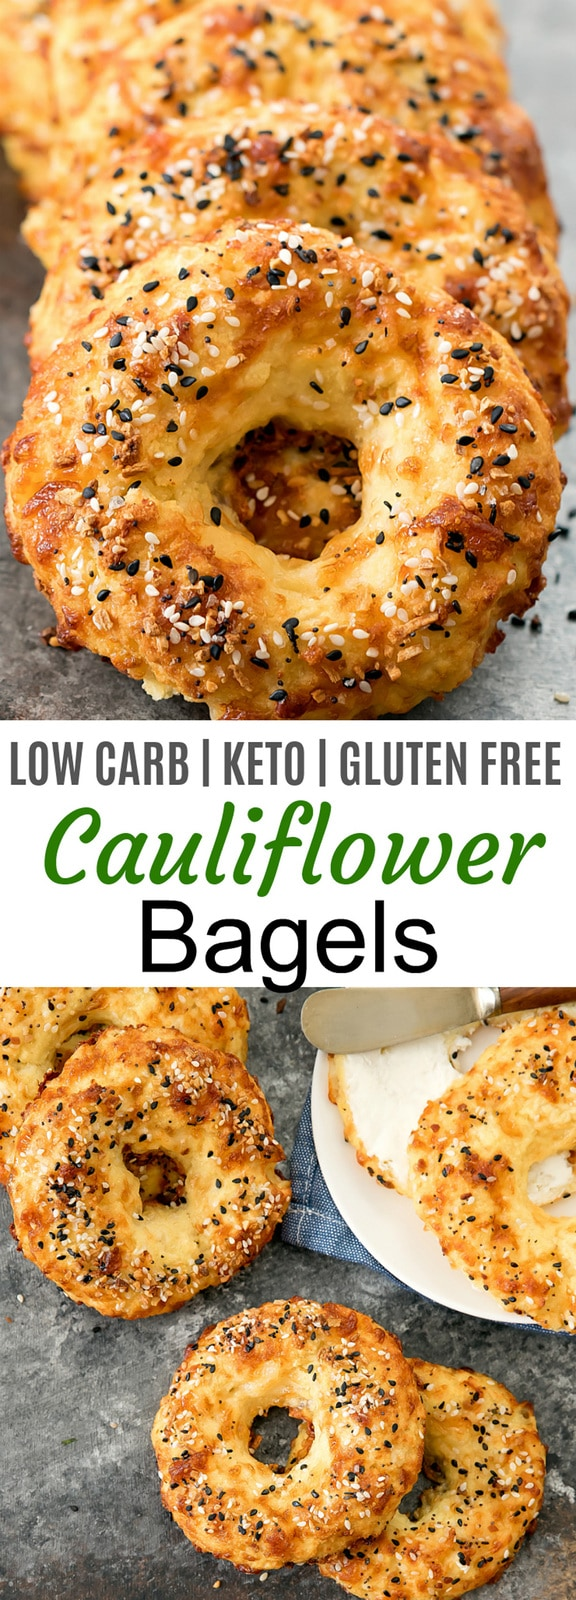 Cauliflower Bagels. Crusty, chewy bagels made with cauliflower! These taste like cheesy bagels and they are also low carb, keto, gluten free and wheat flour free.